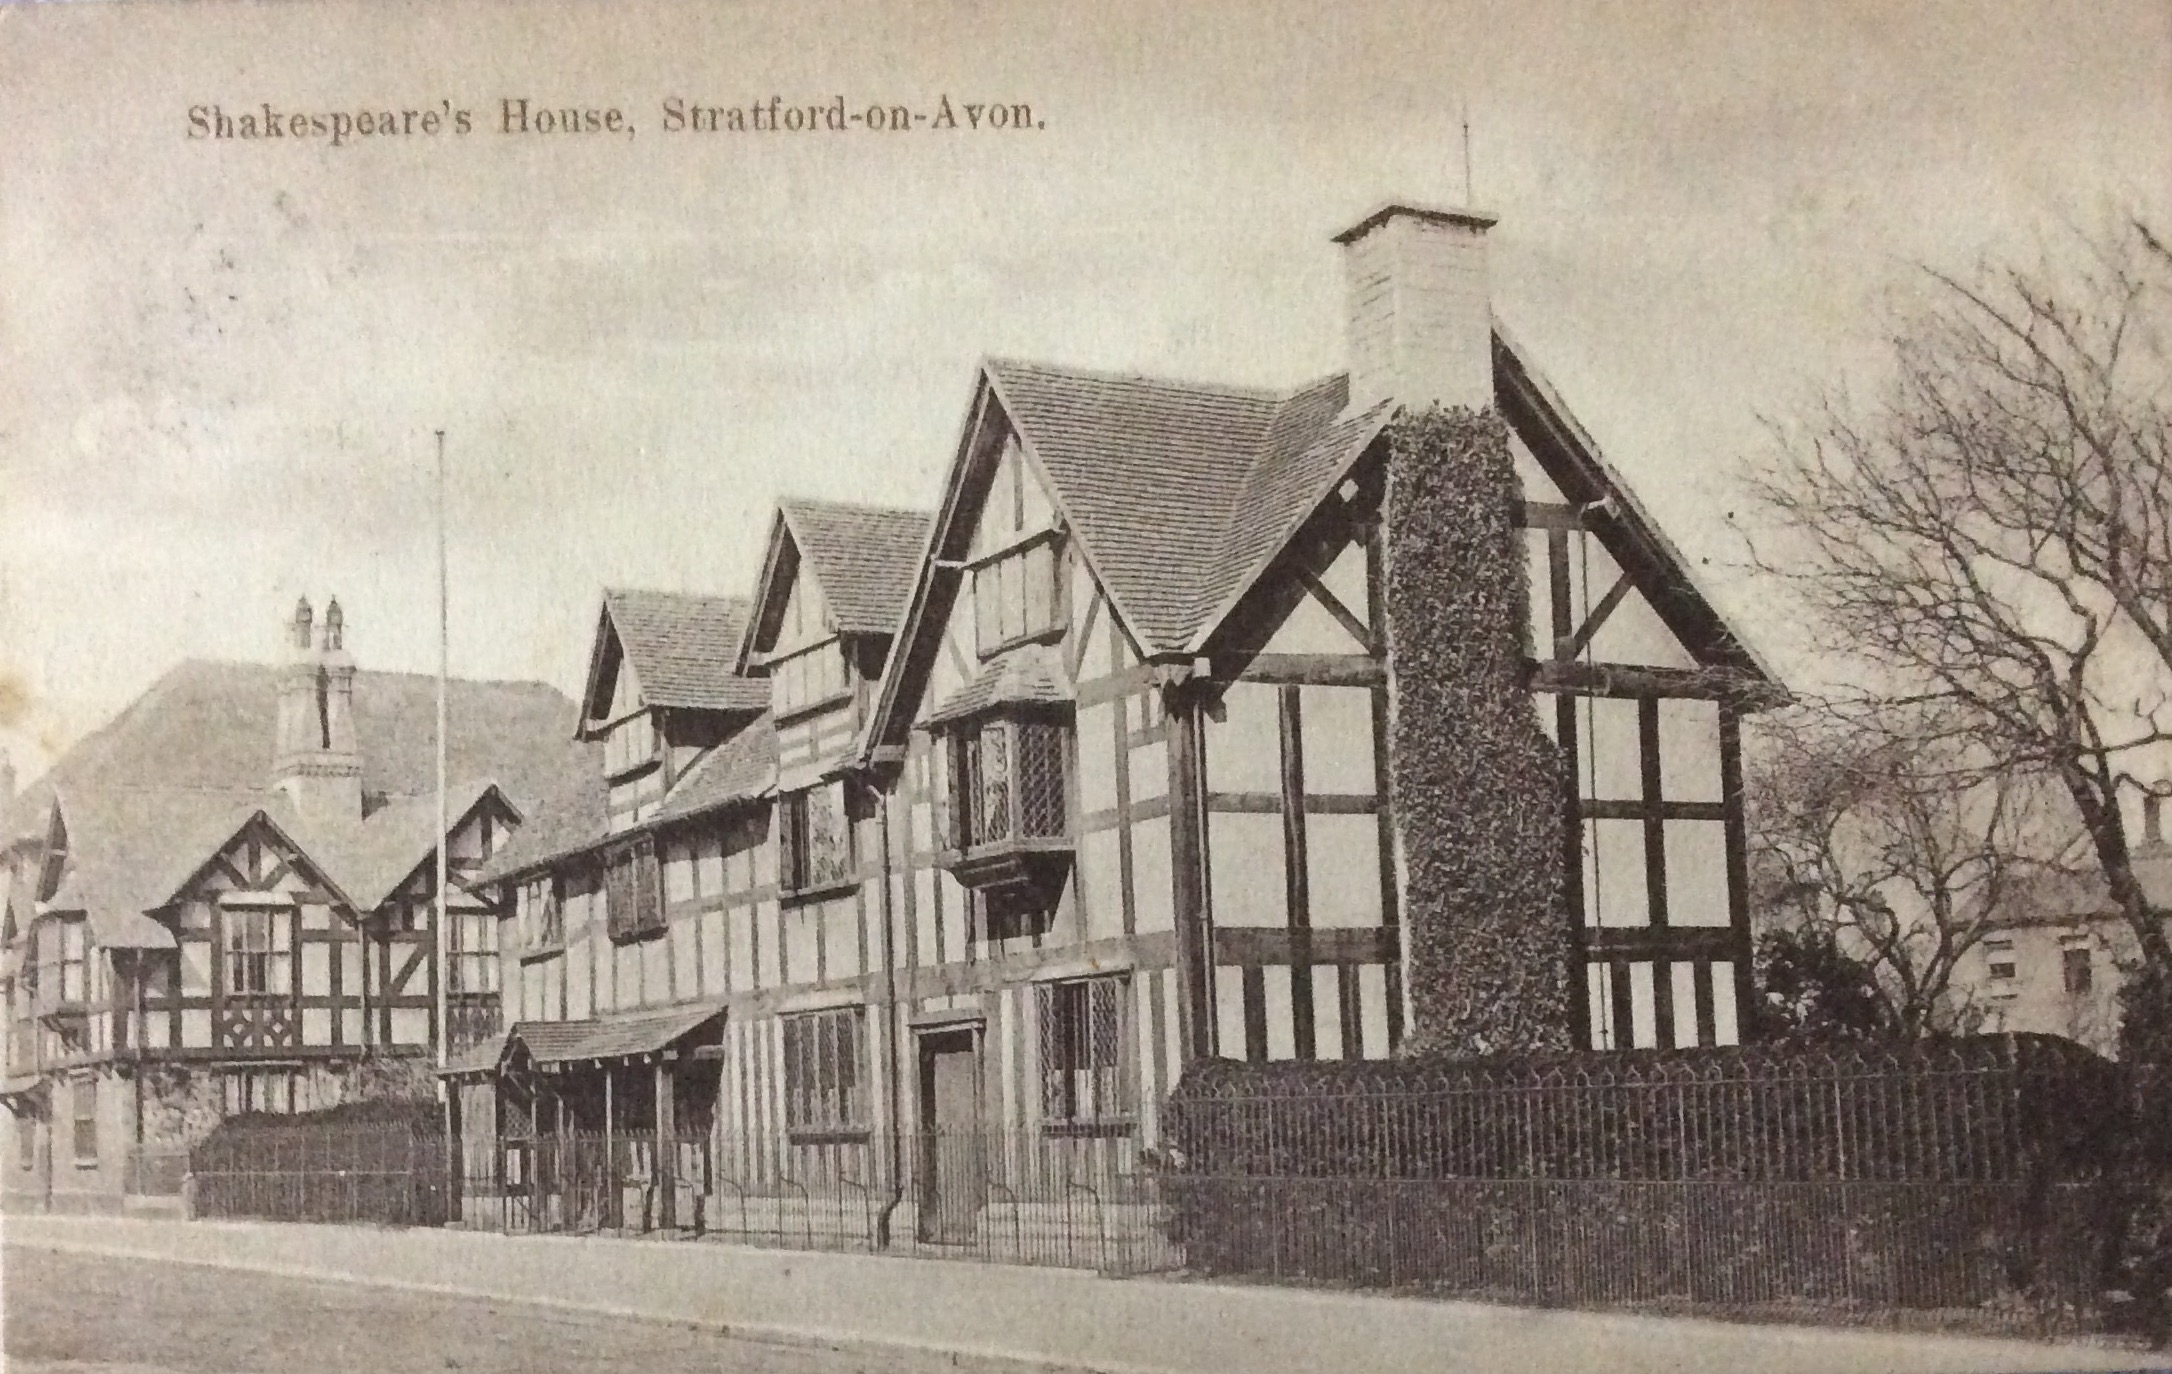 1908 Stratford-on-Avon is interesting and old